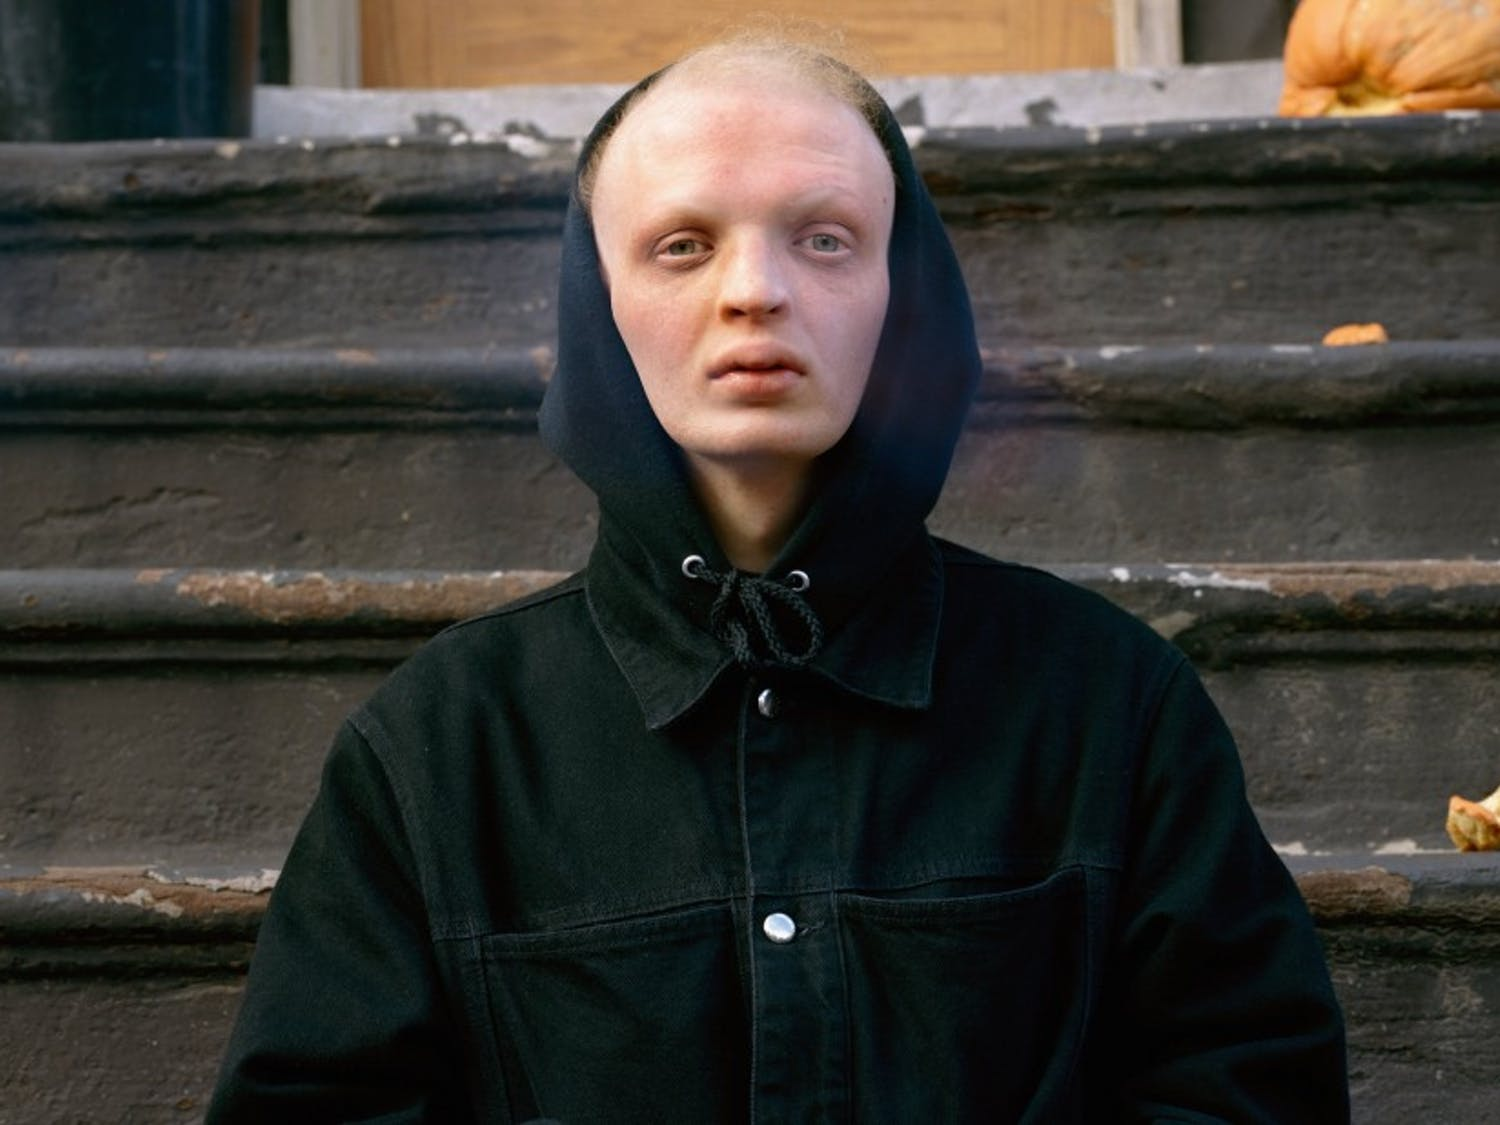 Jacob Moss spent last summer traveling across American and photographing individuals, like the man pictured above, with ectodermal dysplasia, a rare genetic condition he also has.